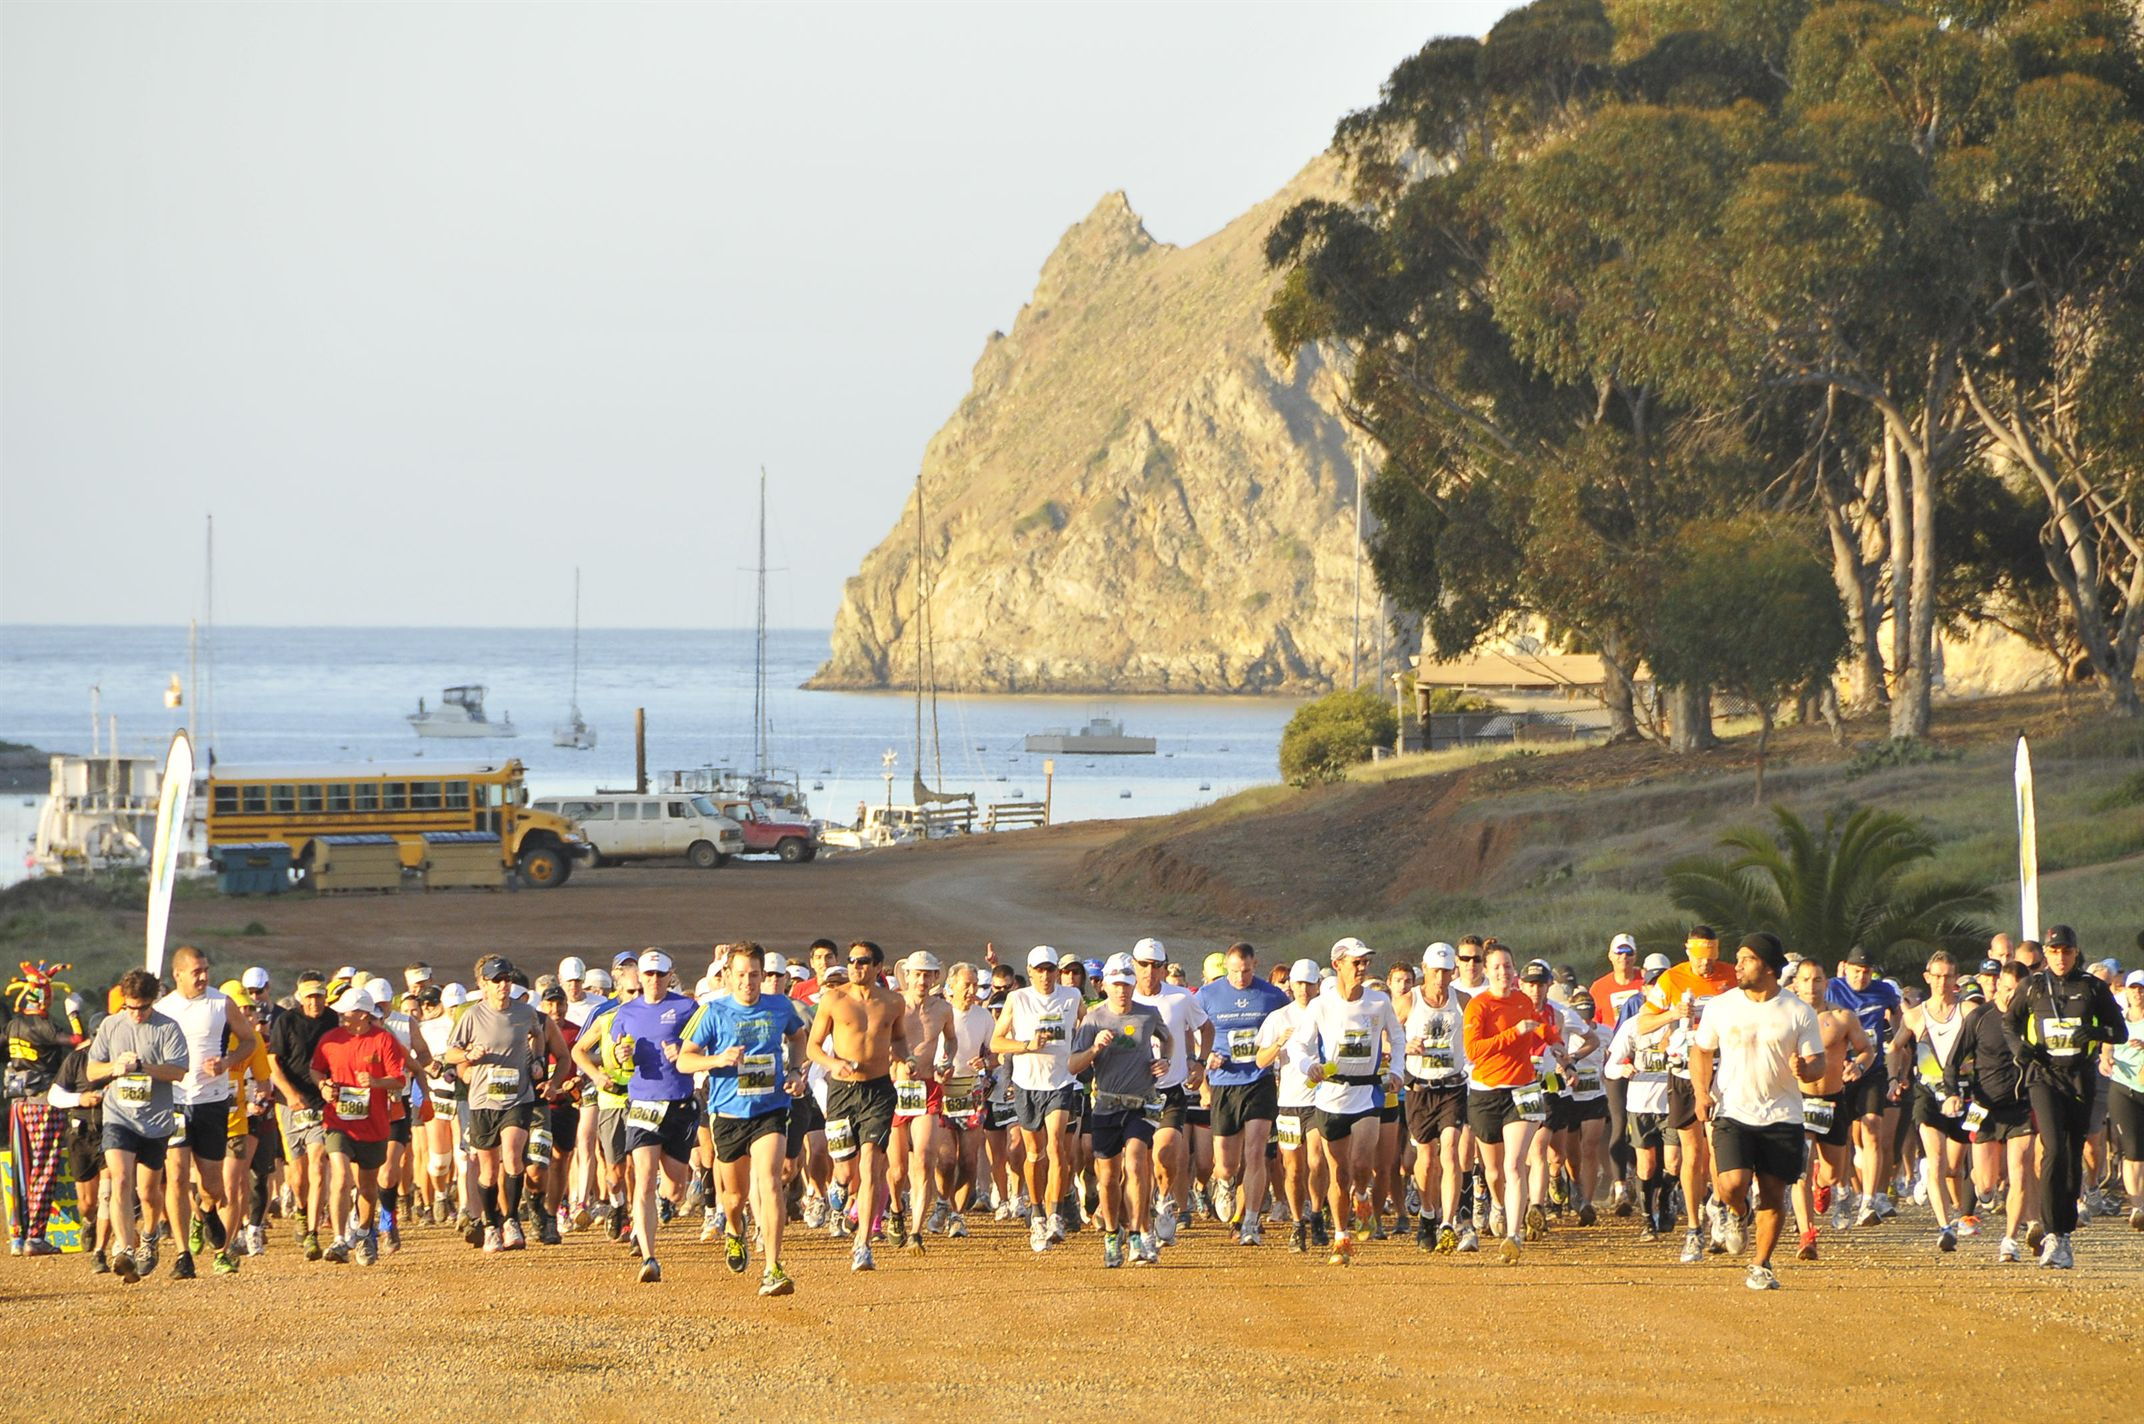 Catalina Island Marathon Scheduled for March 15